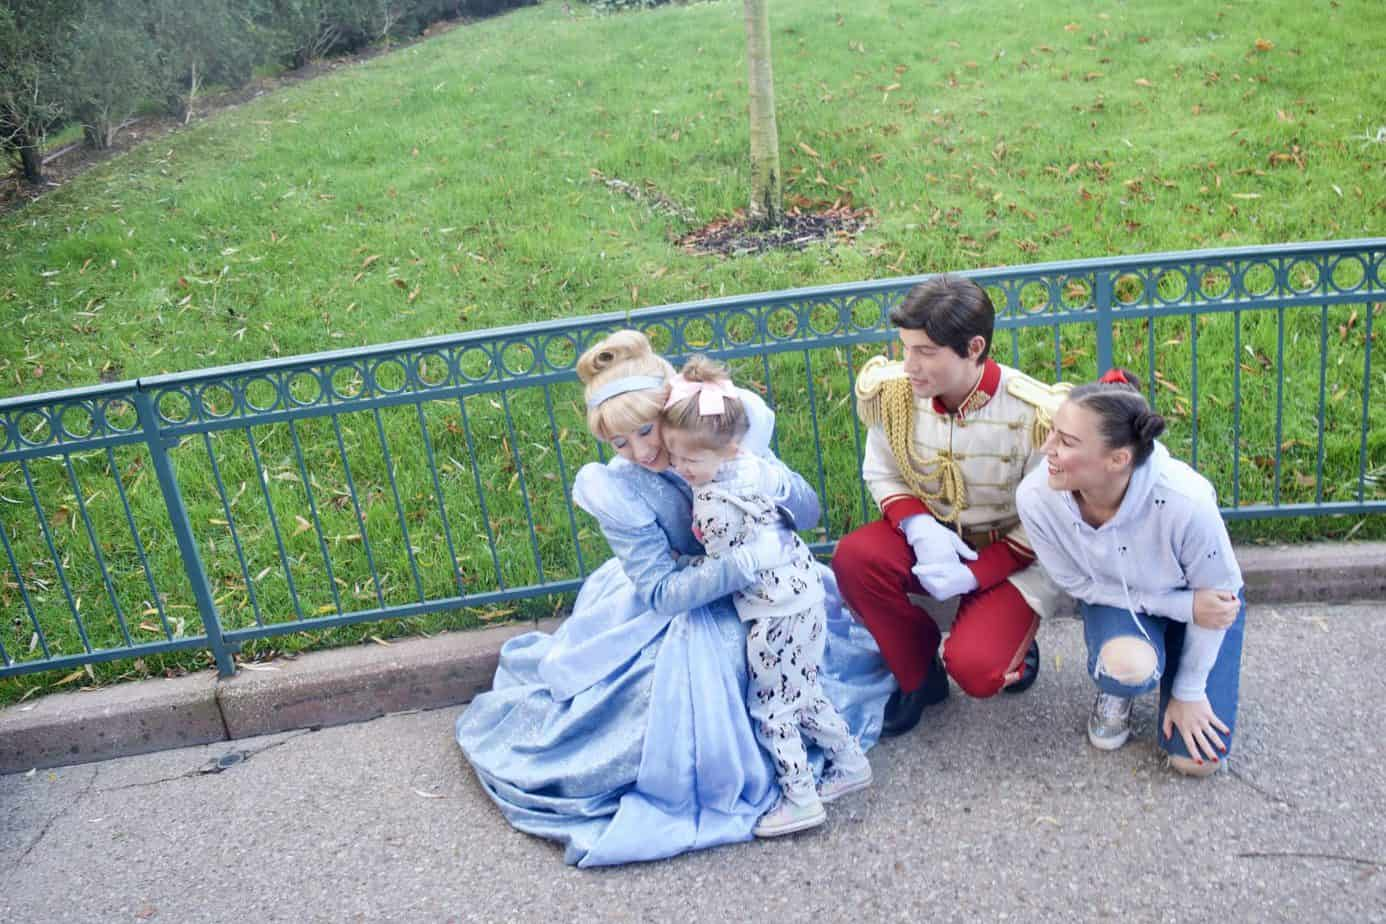 The most Magical moment meeting Cinderella and Prince Charming